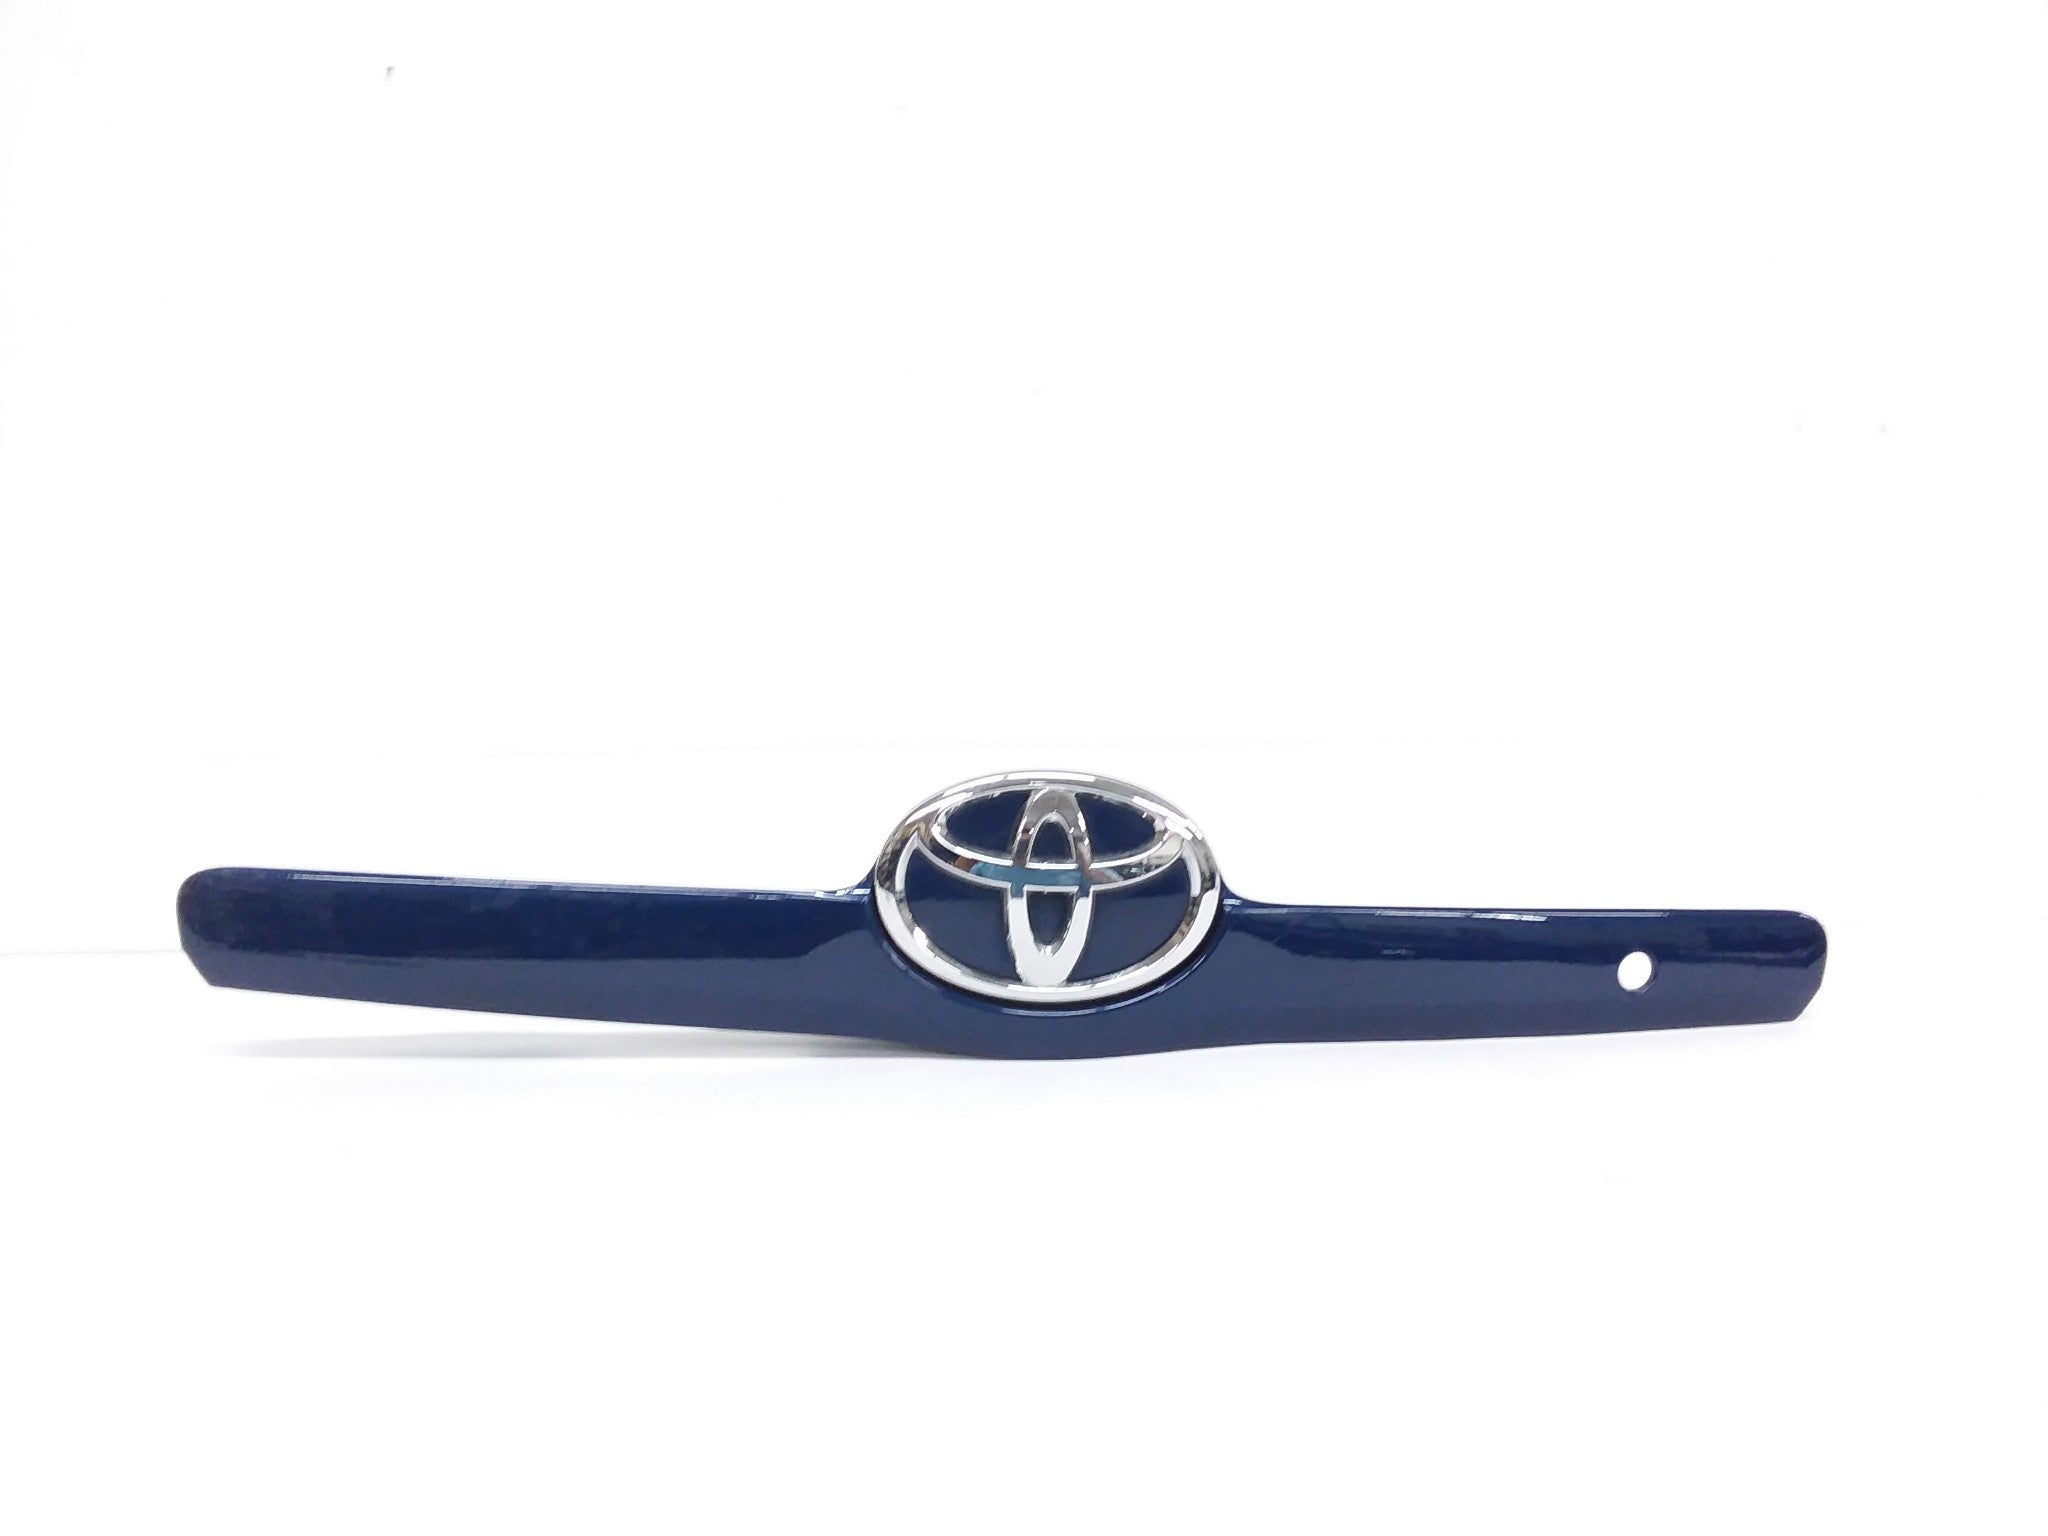 2007 - 2010 Toyota Camry Trunk Lid Garnish Trim w/ Emblem Blue OEM 76801-06120